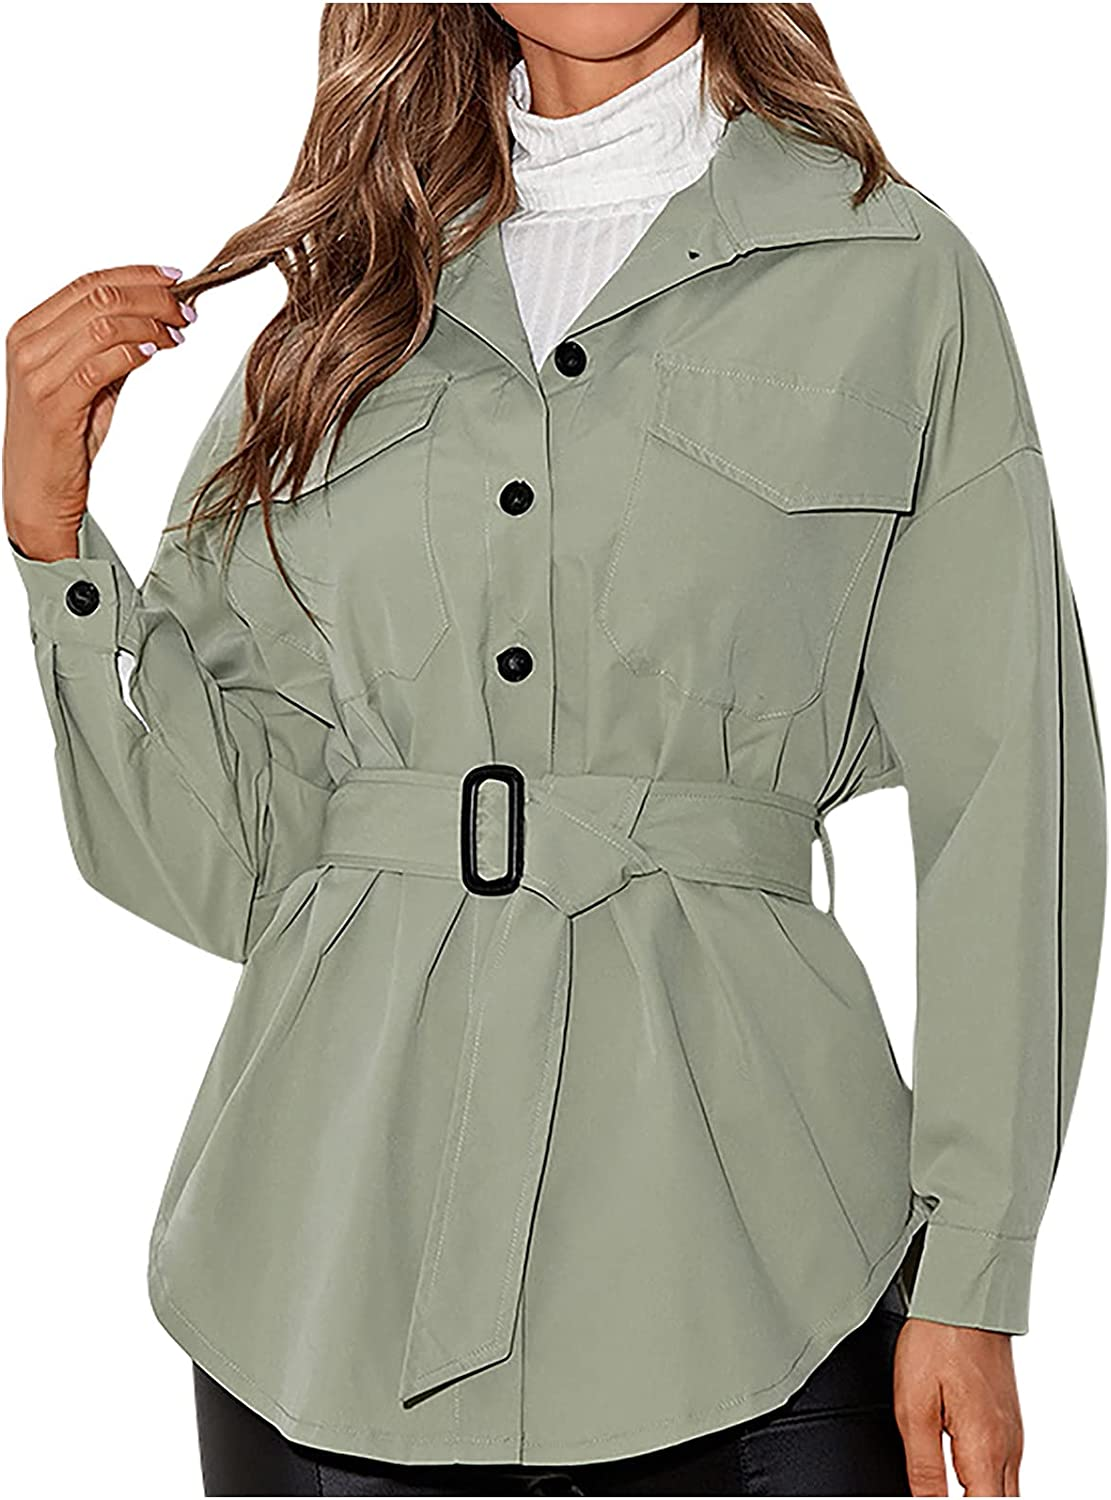 CofeeMO Womens Solid Color Coat Button Down Casual Loose Tops Blouse Shirt Slim Lapel Blouse with Belt